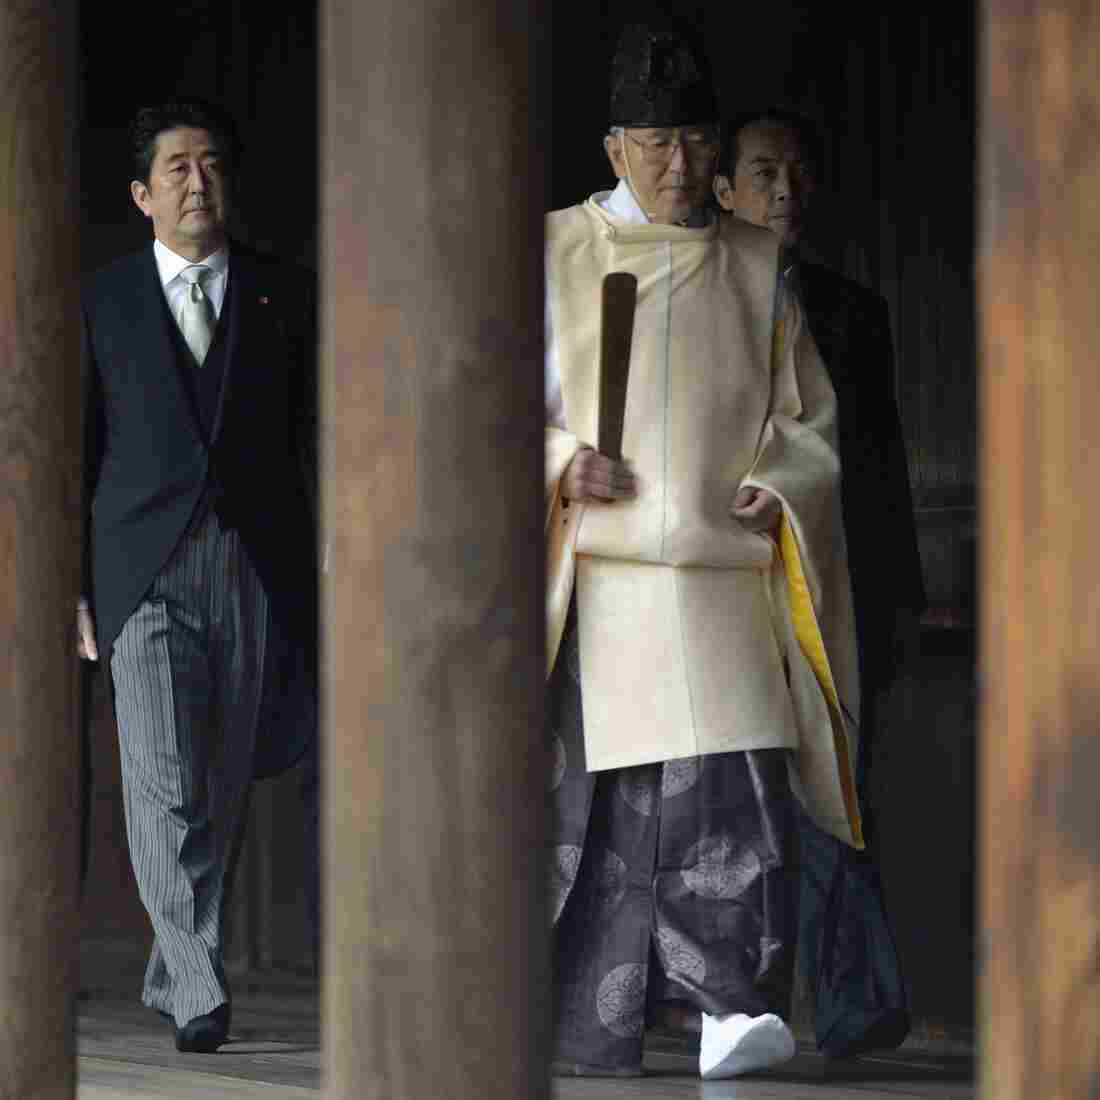 Japan's Abe May Have Hoped To Anger Others With Shrine Visit